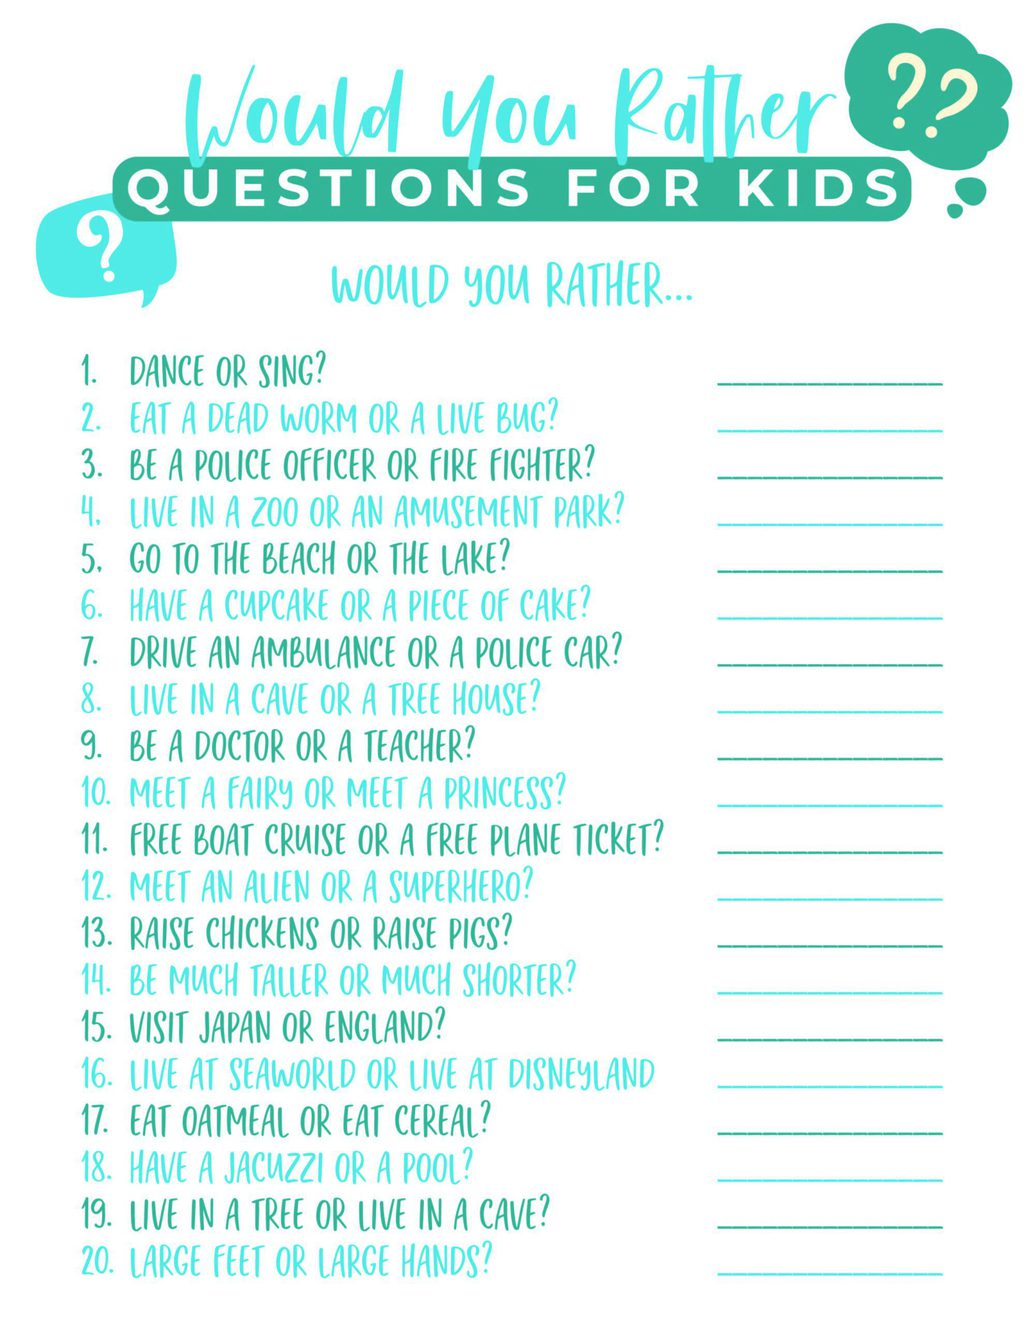 Would You Rather Printable for kids